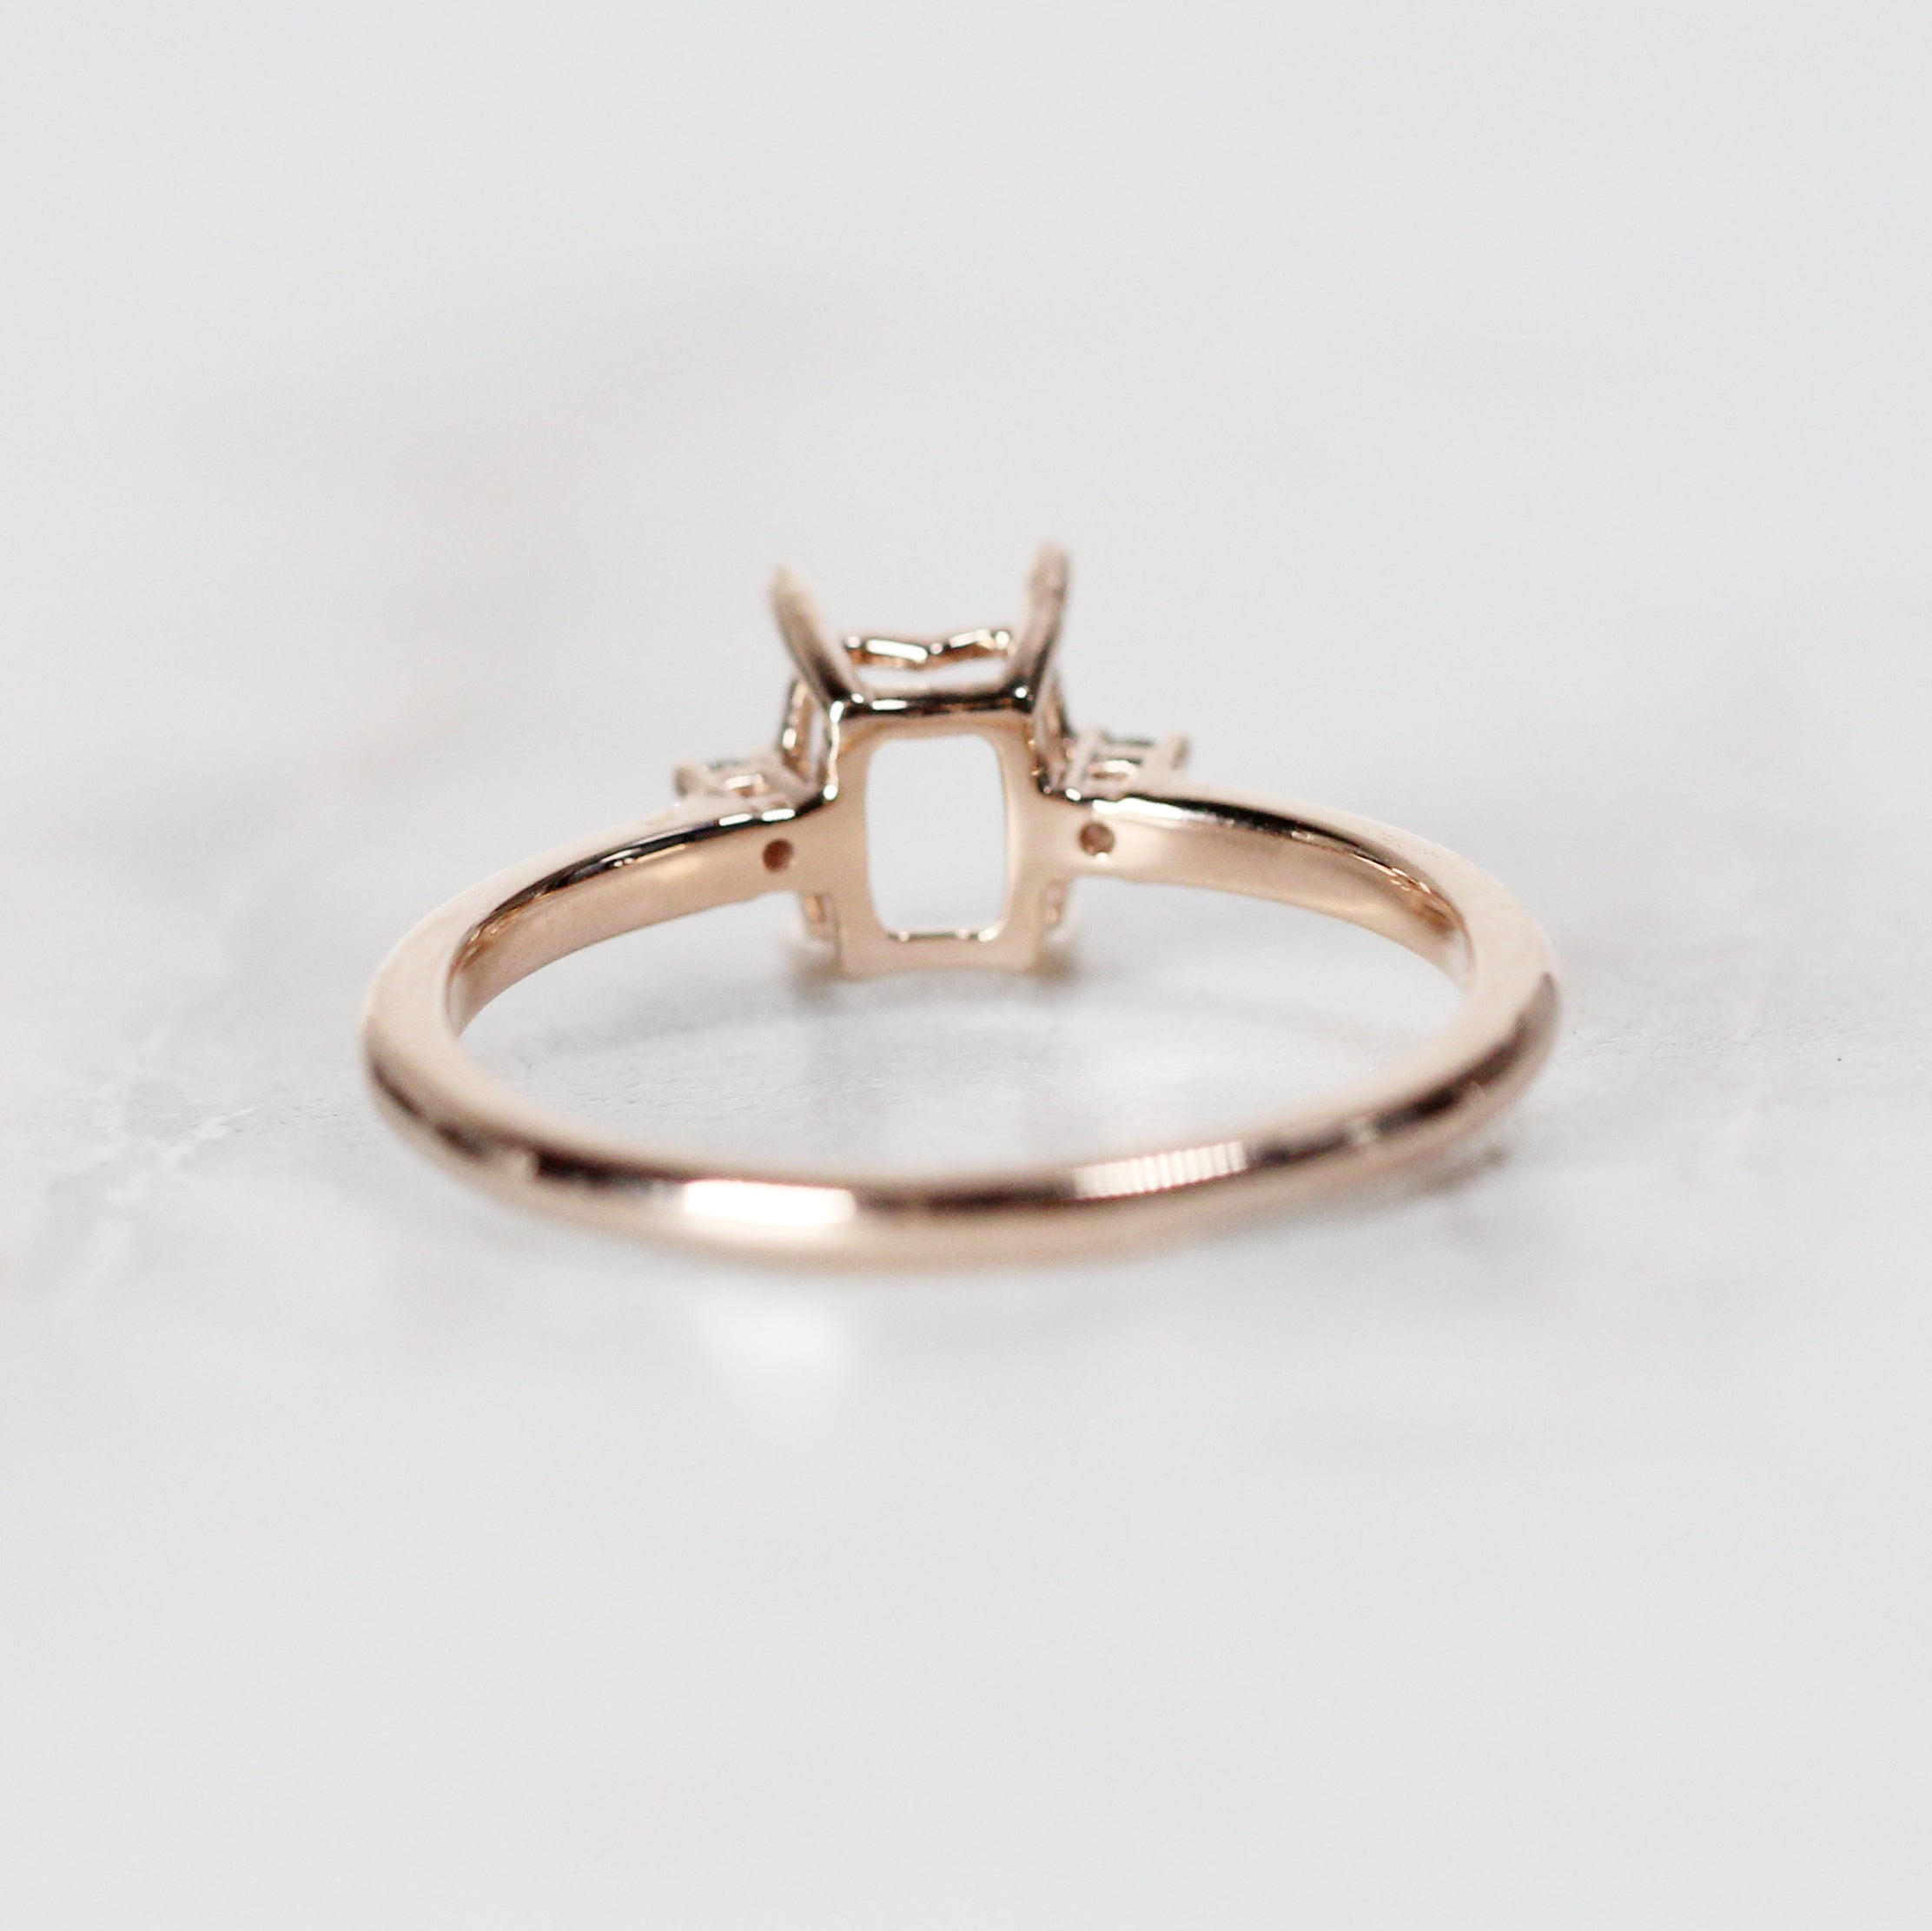 Terra setting - Salt & Pepper Celestial Diamond Engagement Rings and Wedding Bands  by Midwinter Co.